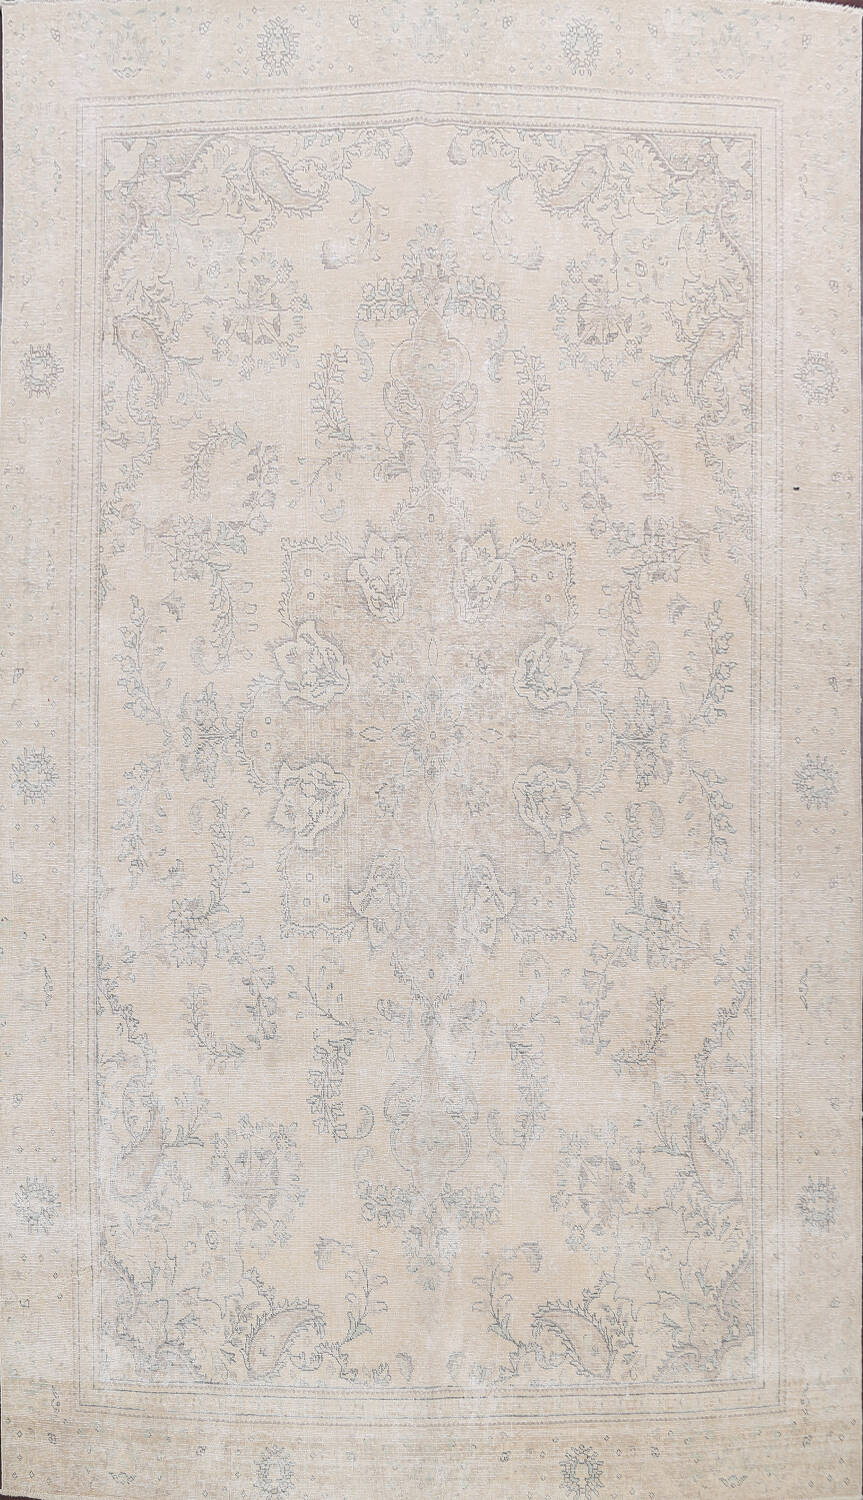 Muted Distressed Floral Tabriz Persian Area Rug 8x12 image 1